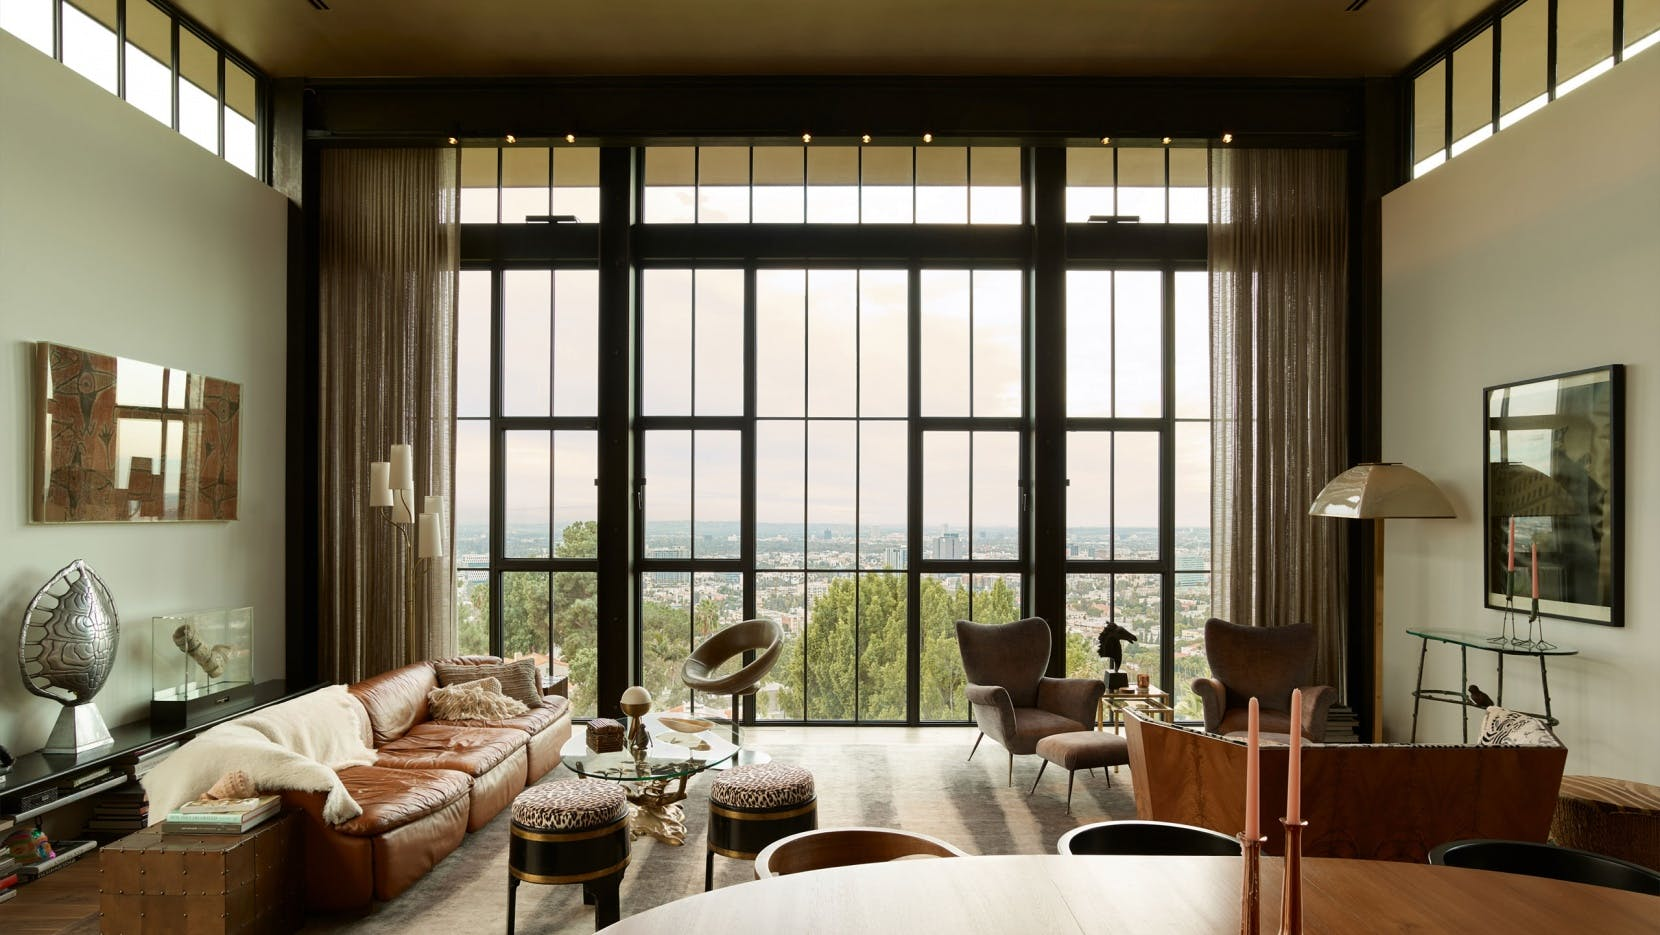 Mia Sara and Brian Henson's Hollywood house by Kristen Becker of Mutuus Studio.